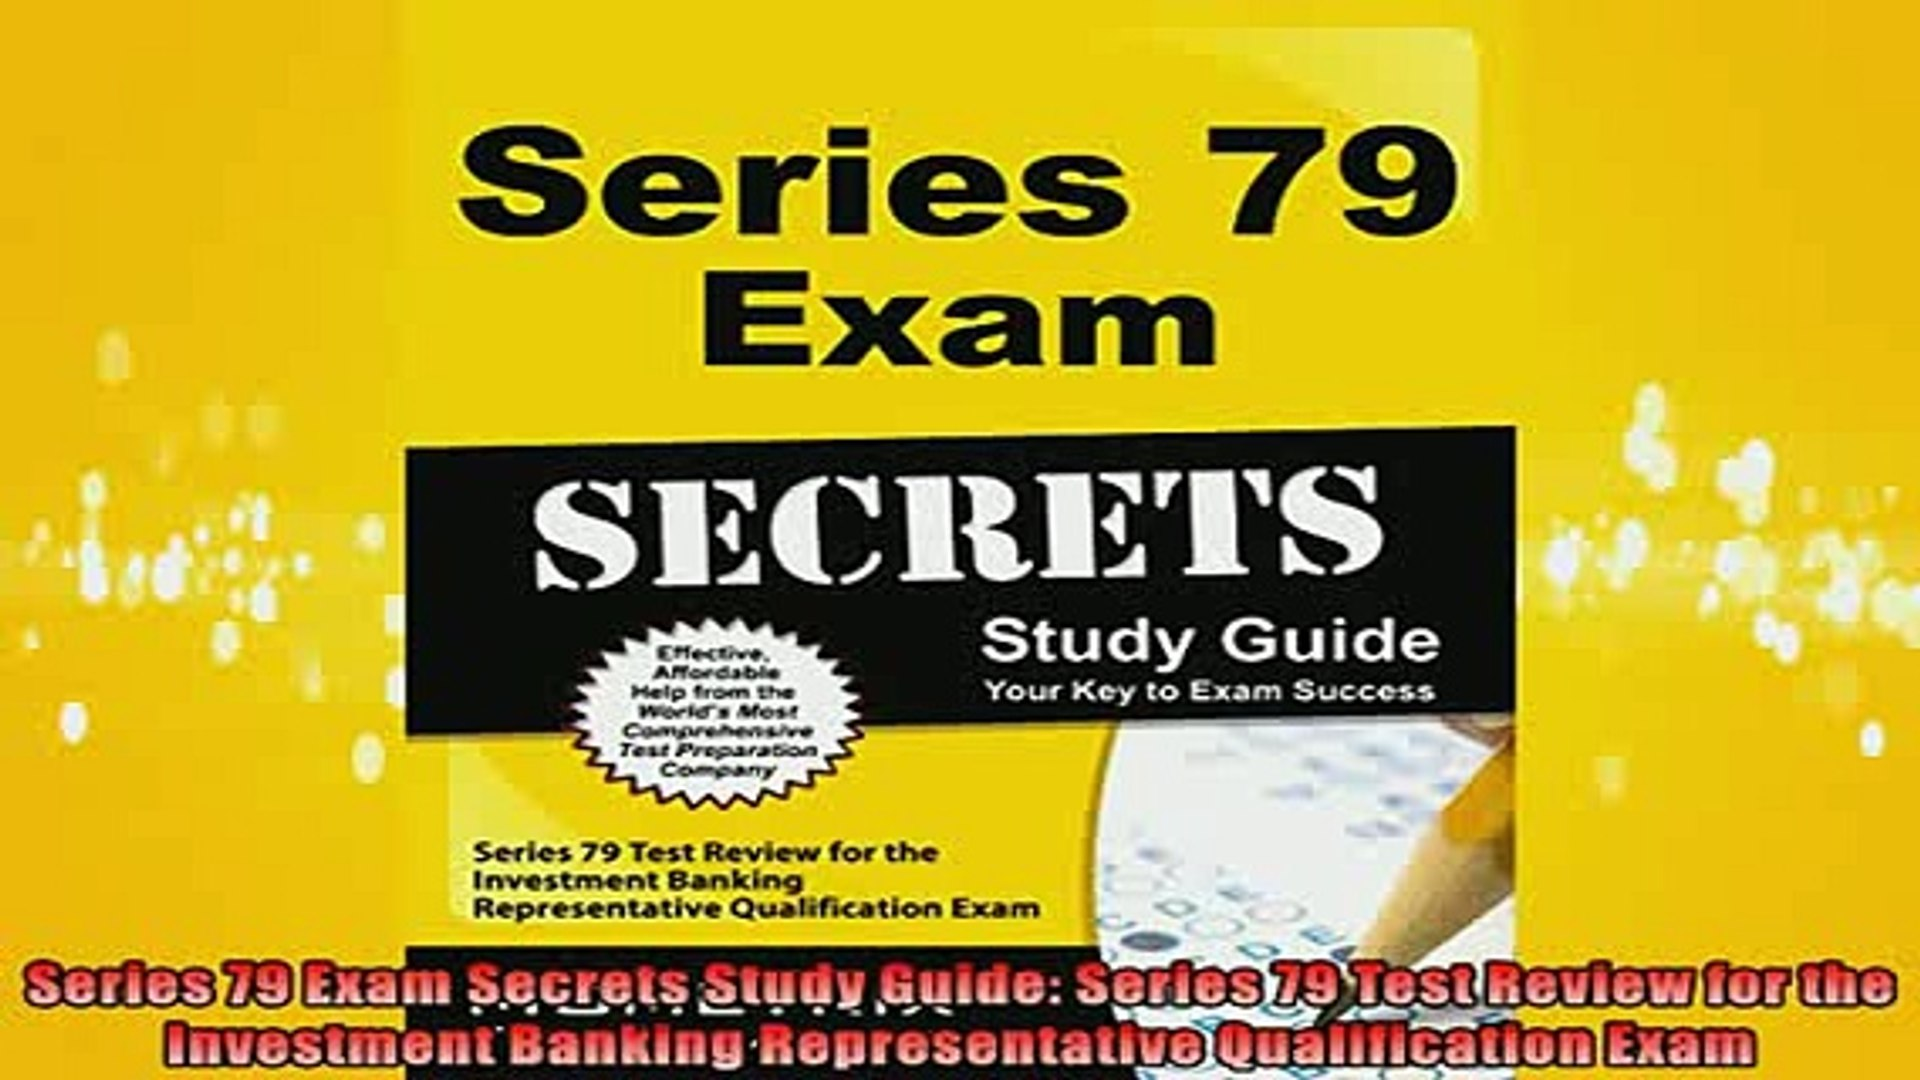 EBOOK ONLINE  Series 79 Exam Secrets Study Guide Series 79 Test Review for the Investment Banking  B